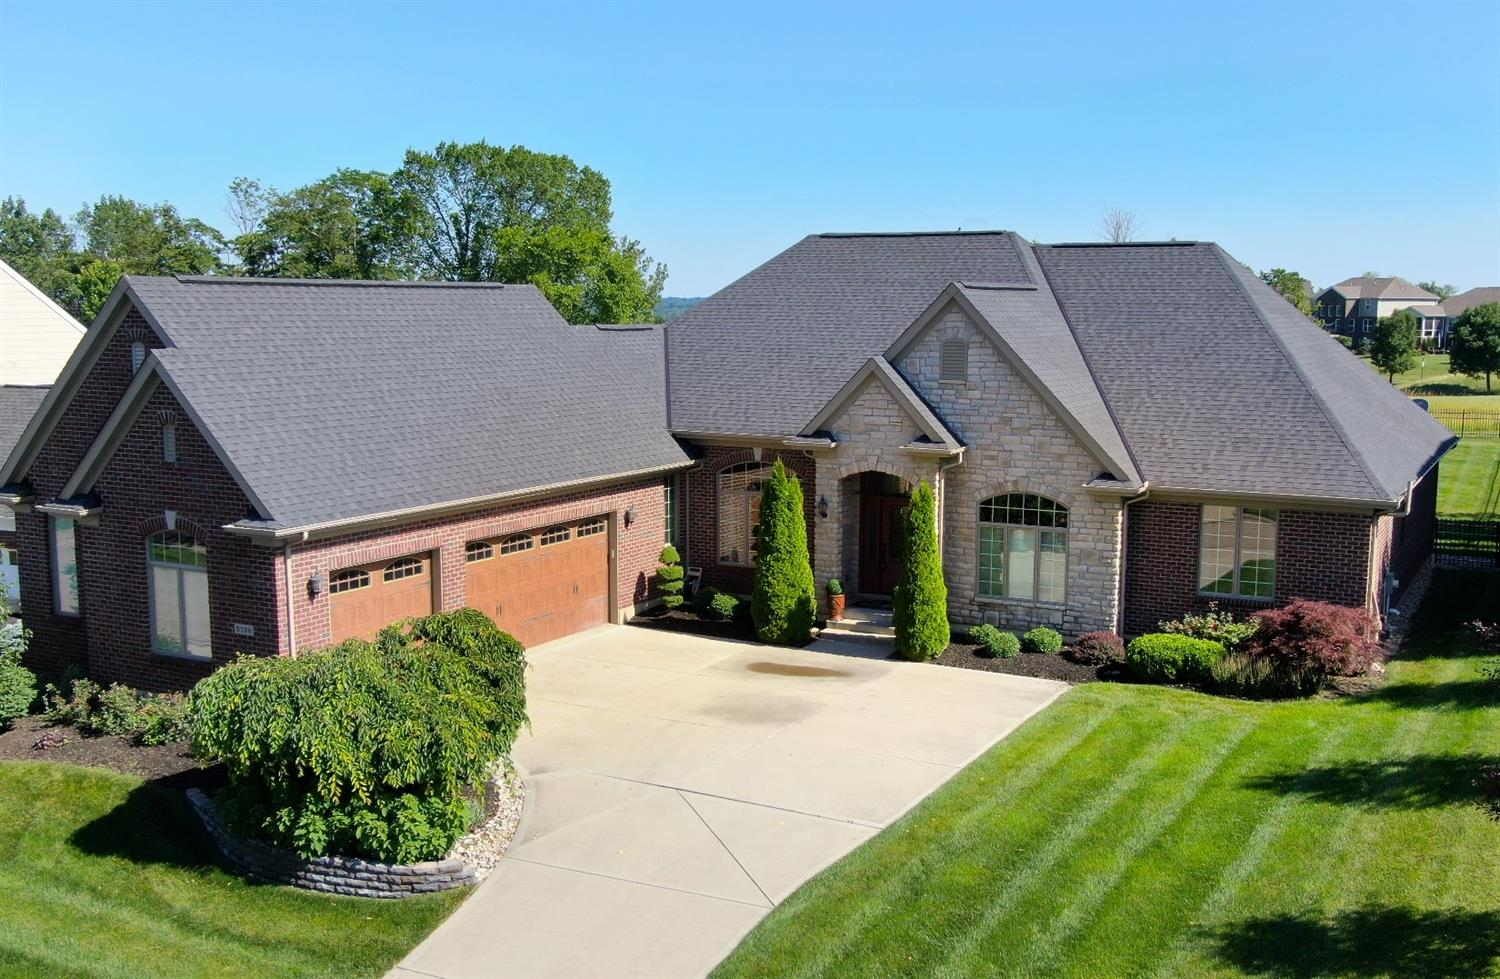 Property for sale at 5136 Emerald View Drive, Hamilton Twp,  Ohio 45039